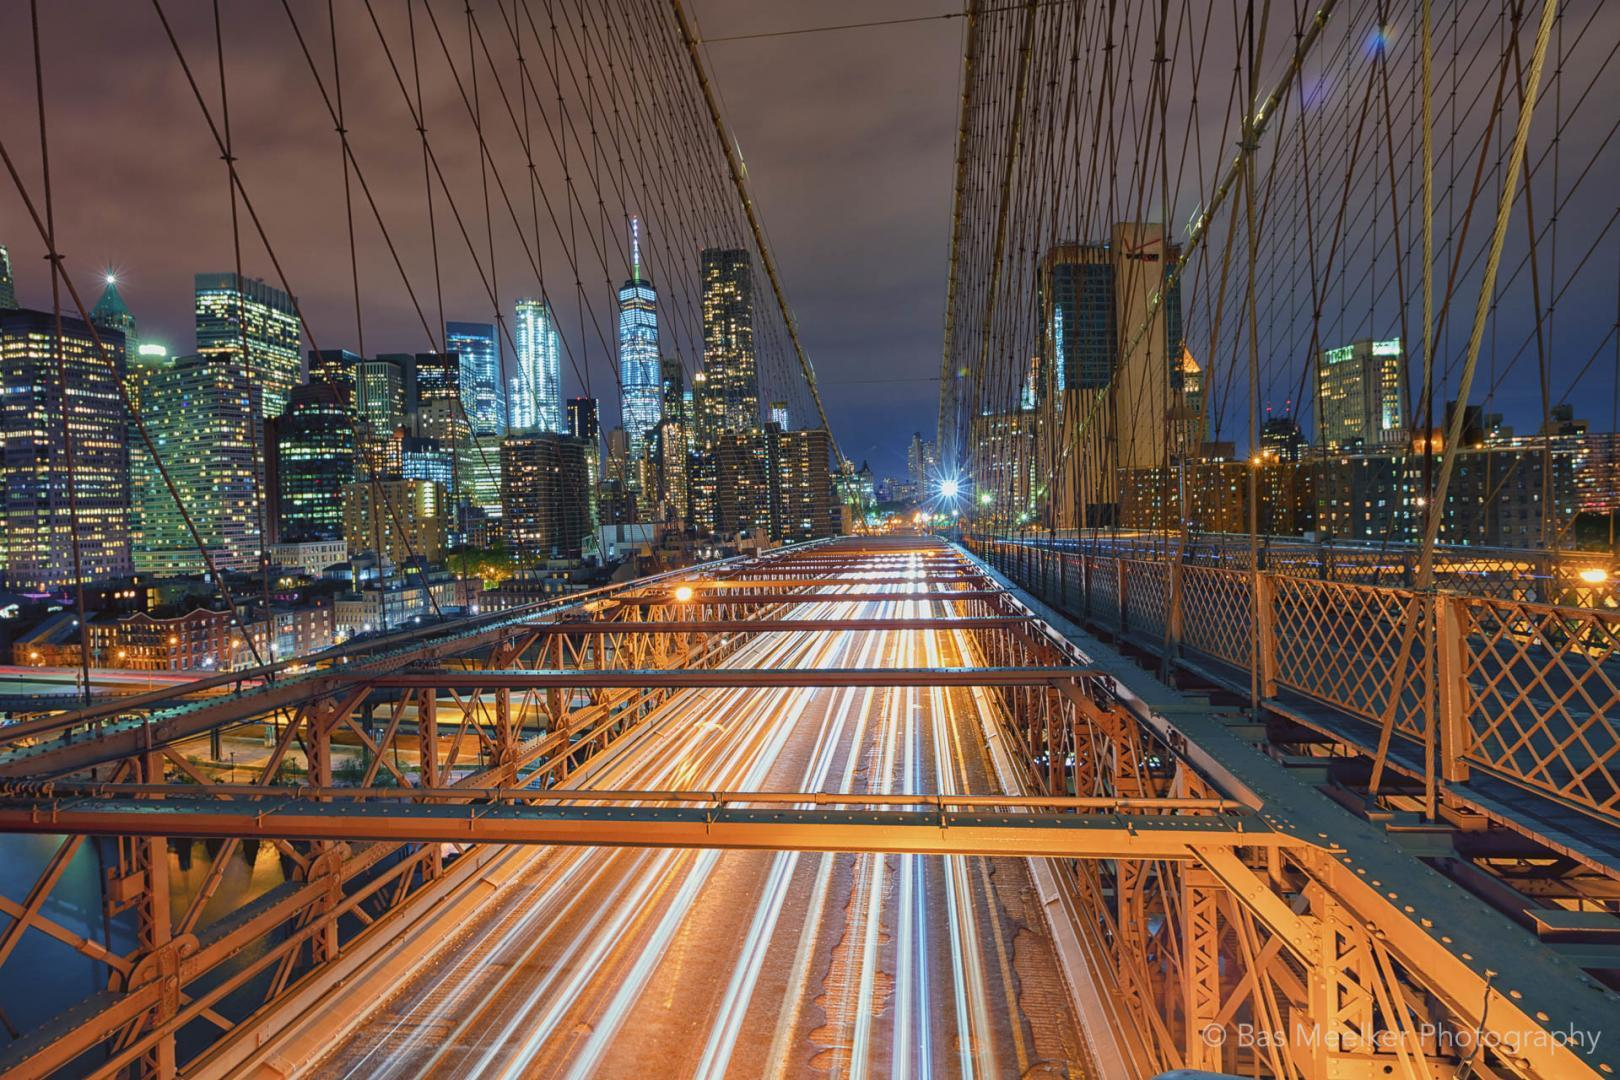 Een blik op Manhattan vanaf de Brooklyn Bridge, New York - Bas Meelker Landschapsfotografie